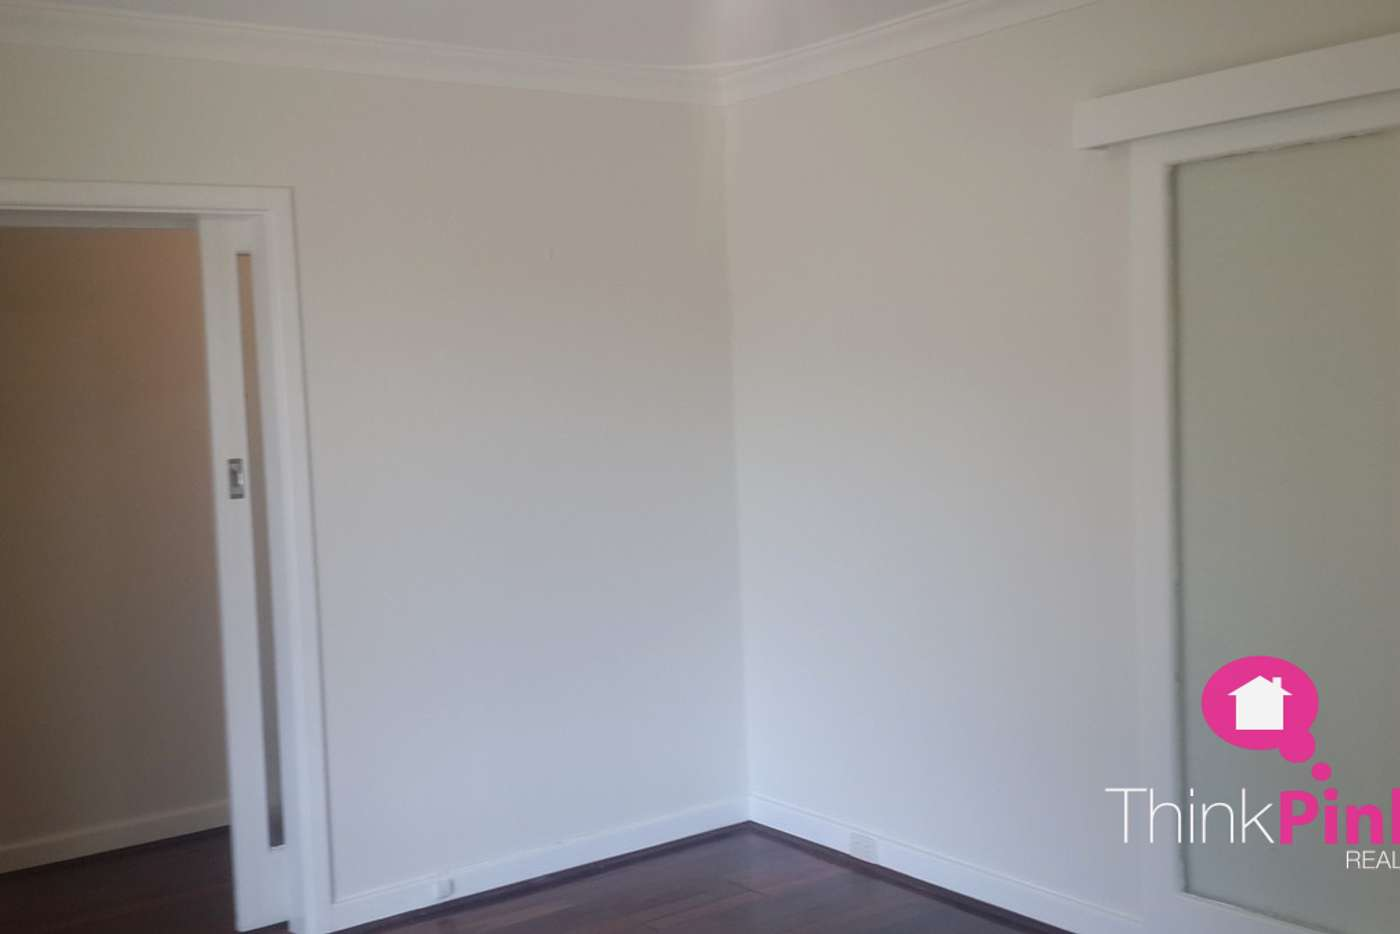 Seventh view of Homely house listing, 103 Wright Street, Kewdale WA 6105